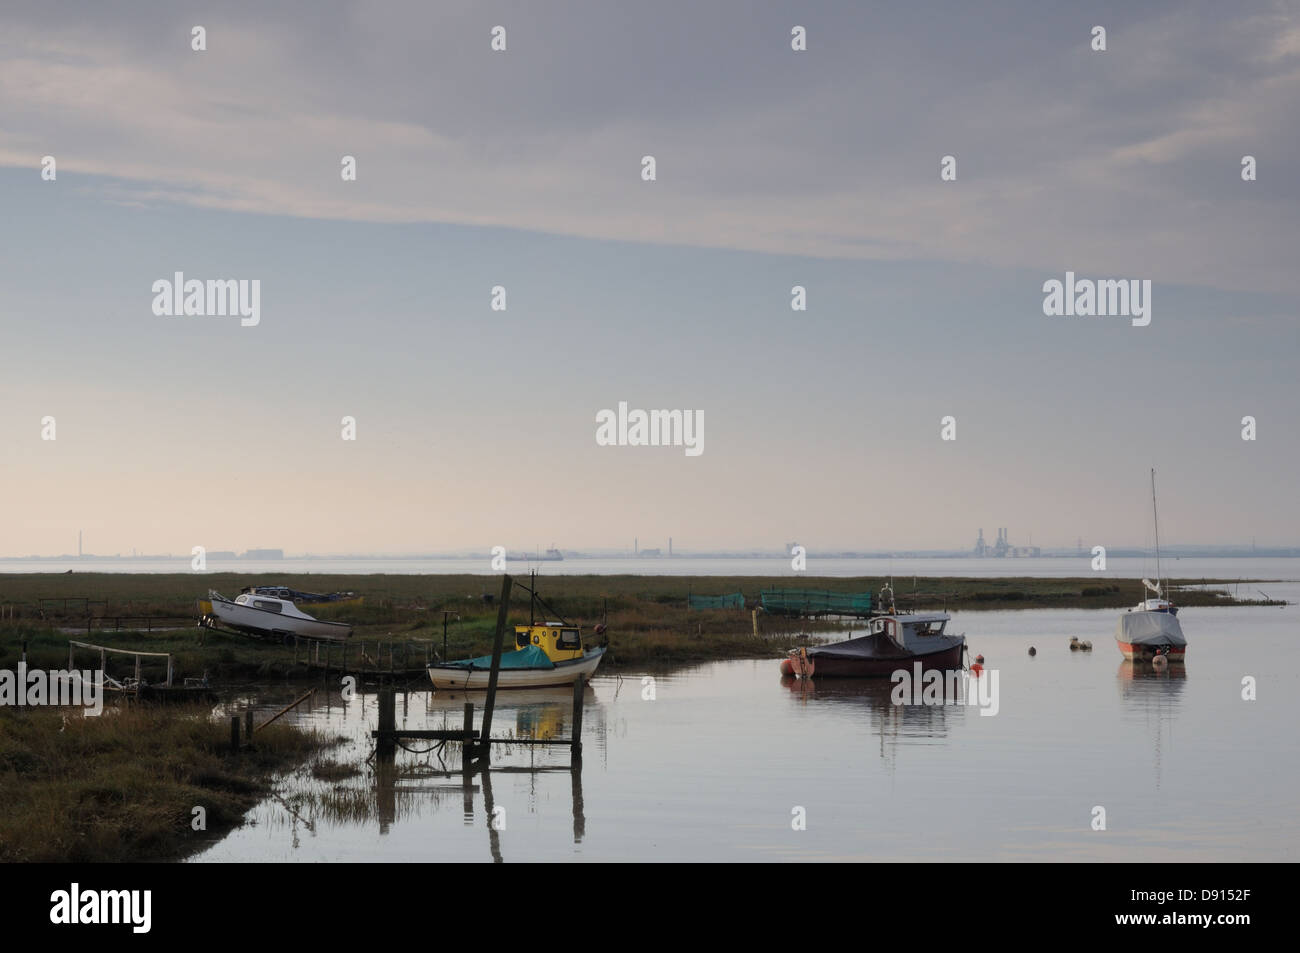 Boats moored at Stone Creek, East Yorkshire, England Stock Photo